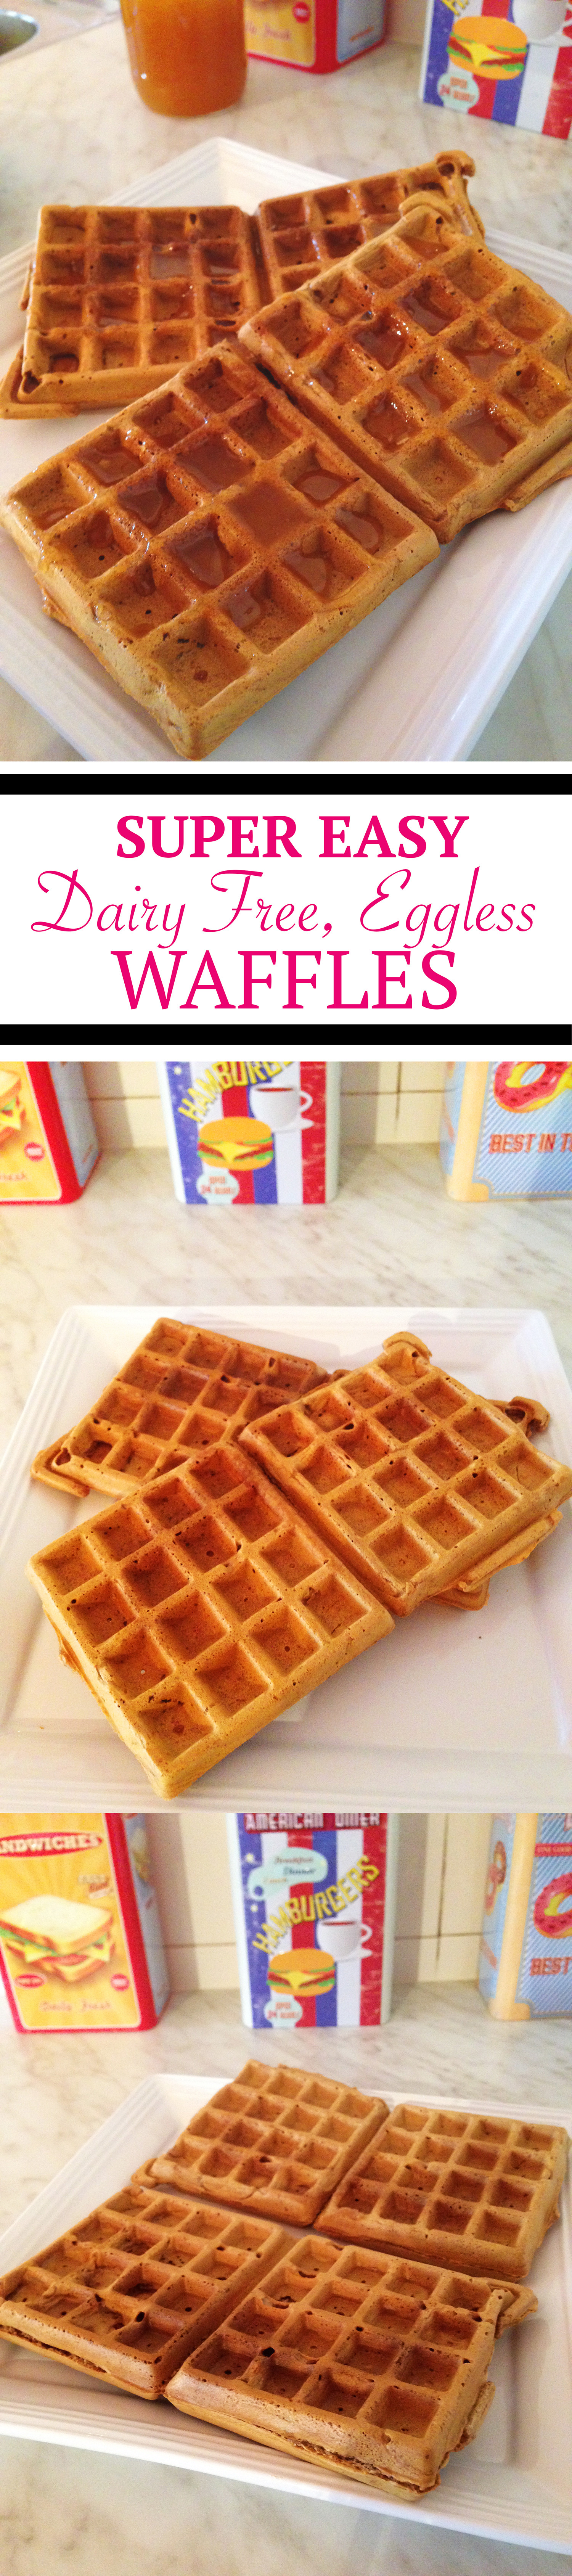 Dairy Free Waffles  Simple Dairy Free Eggless Oatmeal Waffles Recipe Better